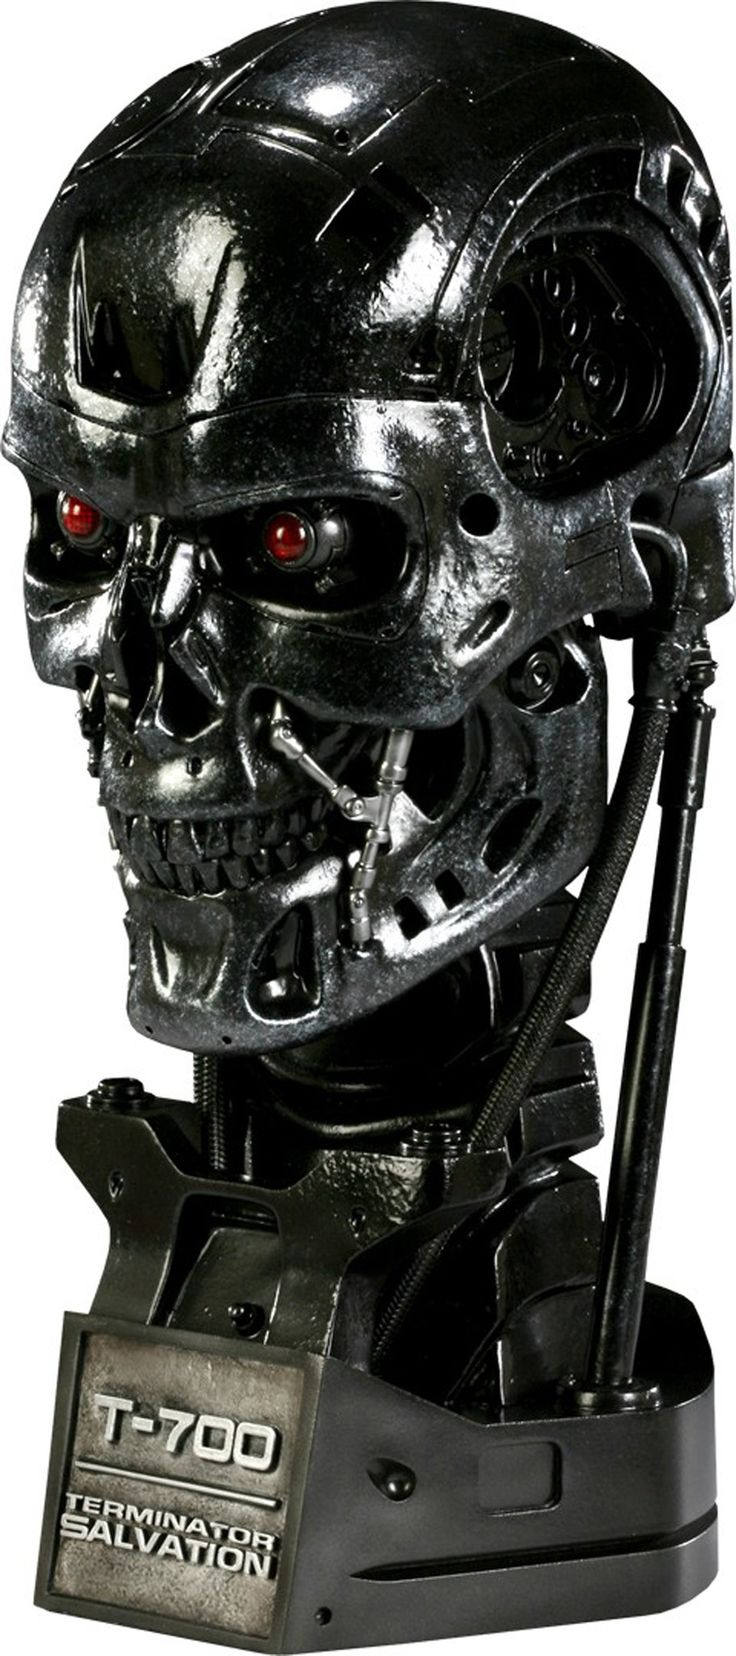 """*T-700 bust from the blockbuster film Terminator Salvation *Light-up eyes and weathered metallic finish *Life-size bust, 13"""" H X 8"""" W X 8"""" L *Hand-crafted with outstanding quality & attention to detai"""